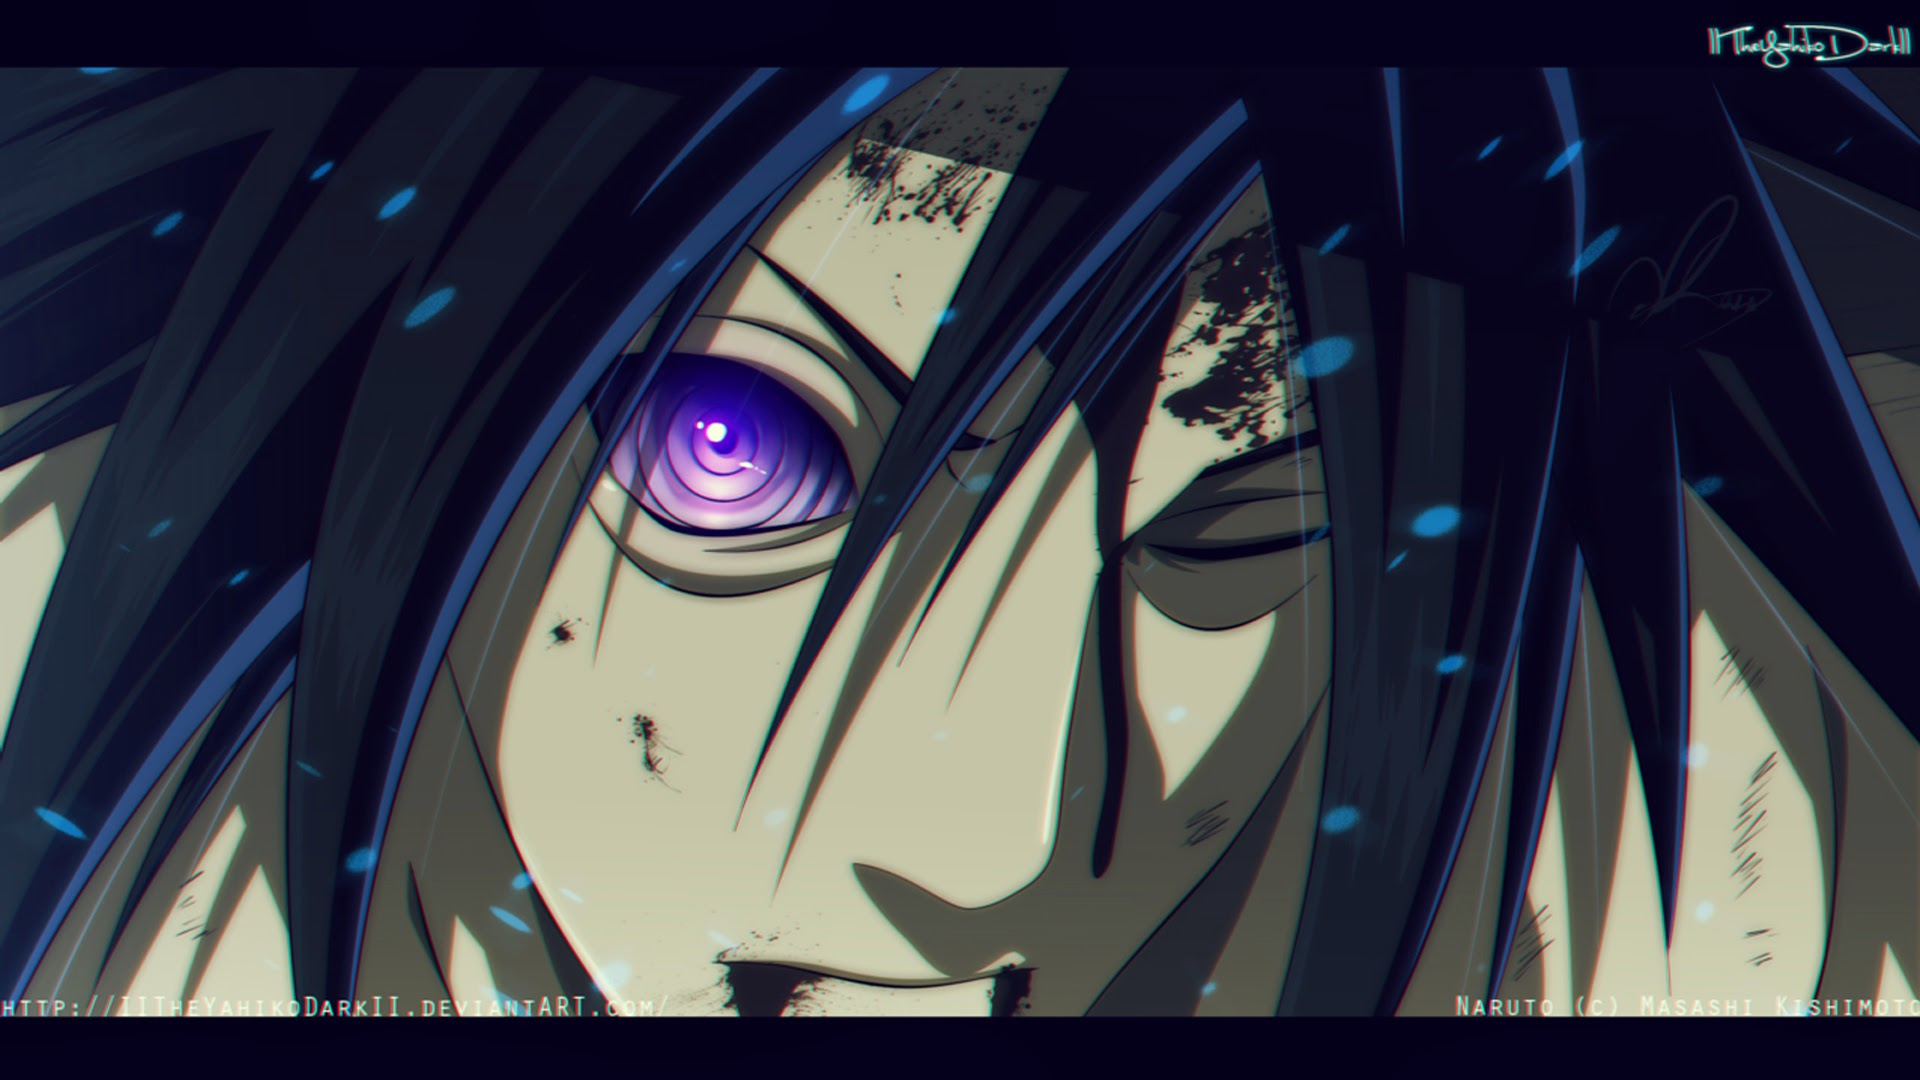 uchiha madara rinnegan rinbo hengoku hd wallpaper 1600x900 74 1920x1080